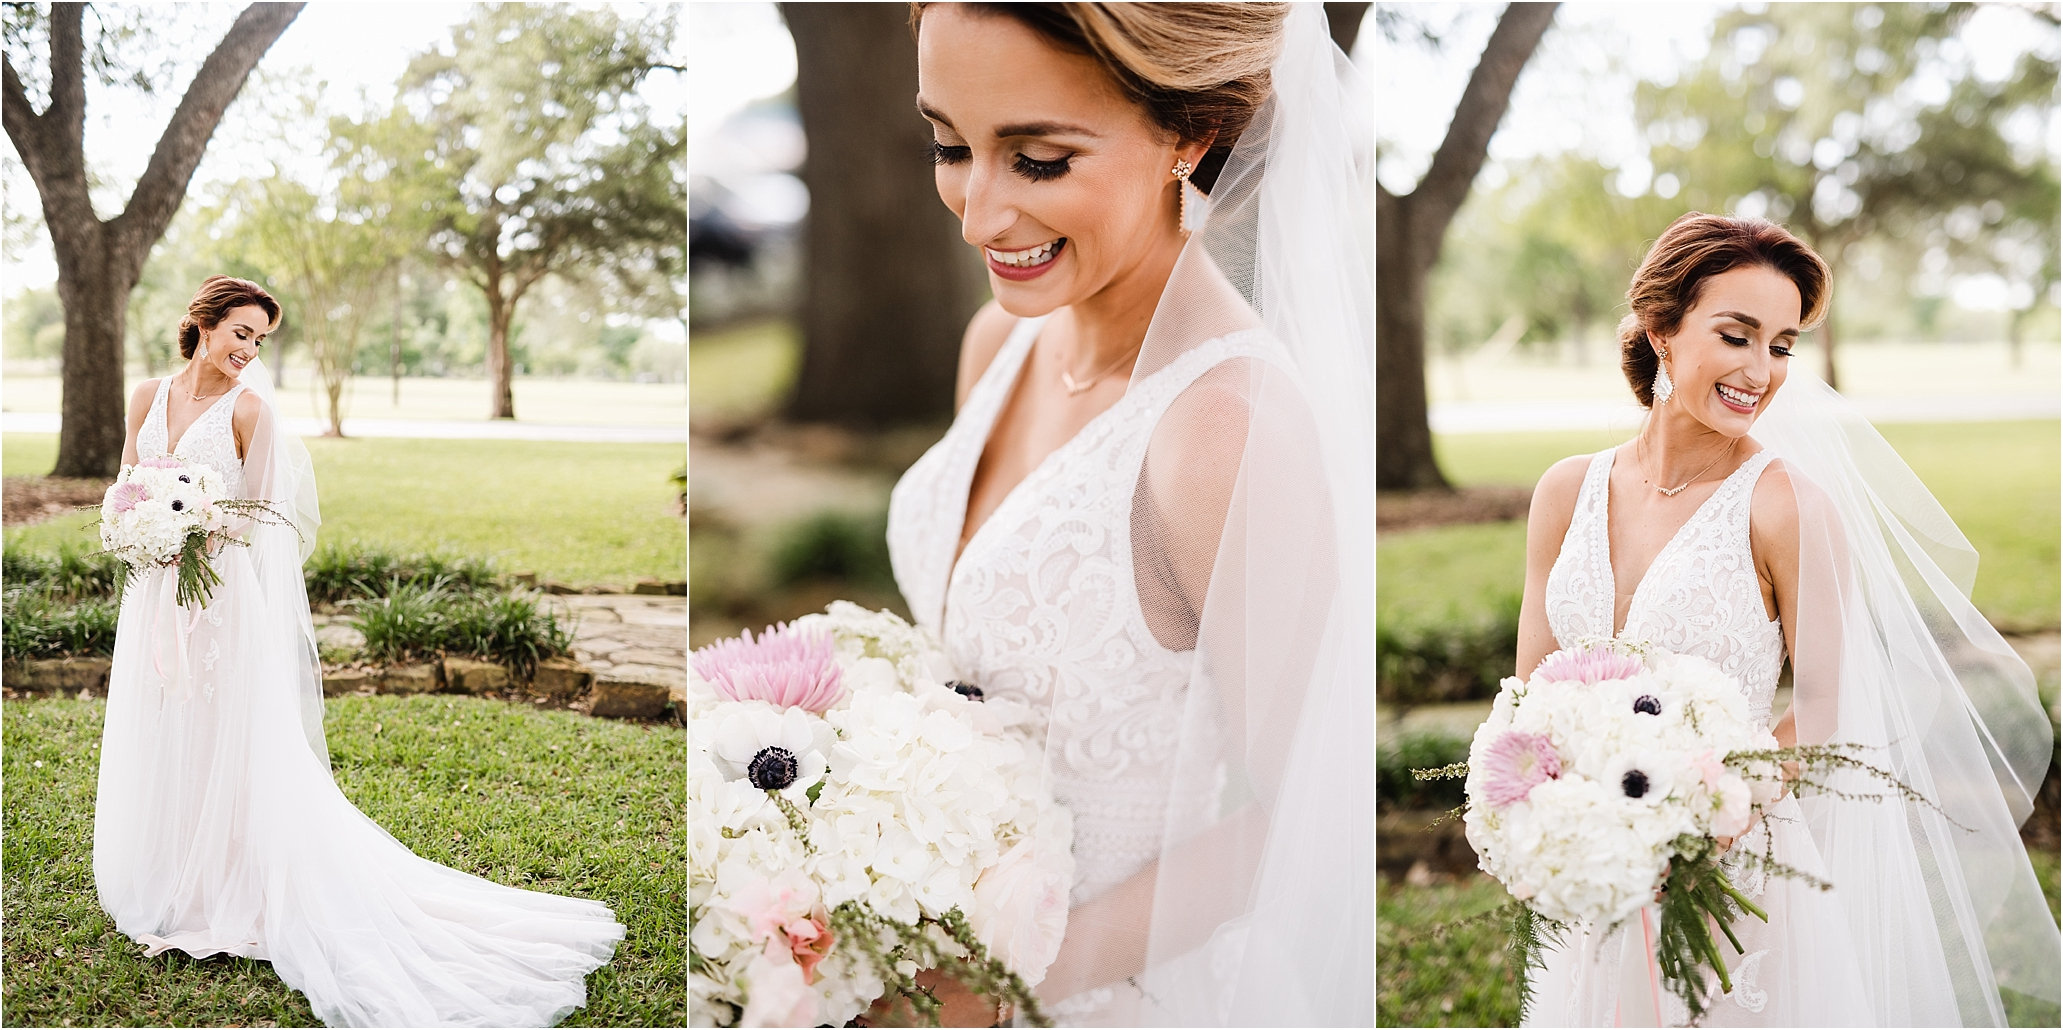 PattisonHouse_TexasWeddingPhotographer_CarlyCrockett&MattBrownWedding_0086.jpg